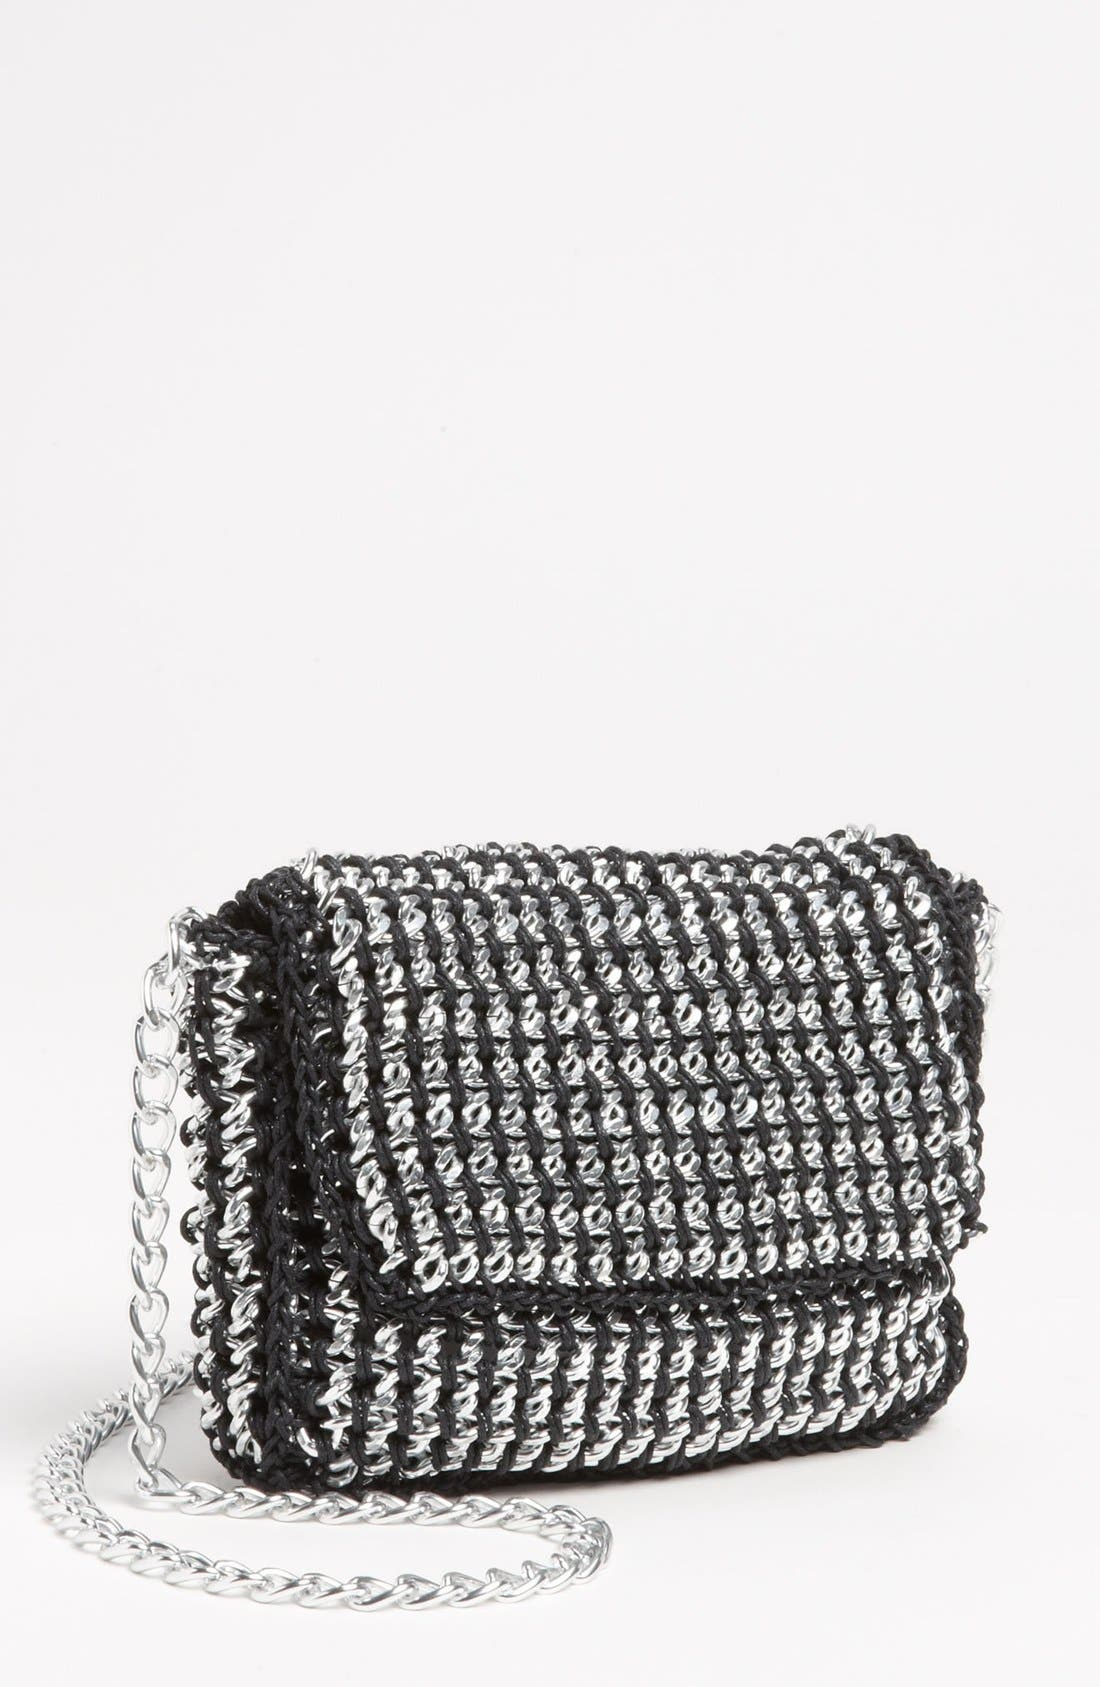 Alternate Image 1 Selected - Sondra Roberts Chain Crossbody Bag